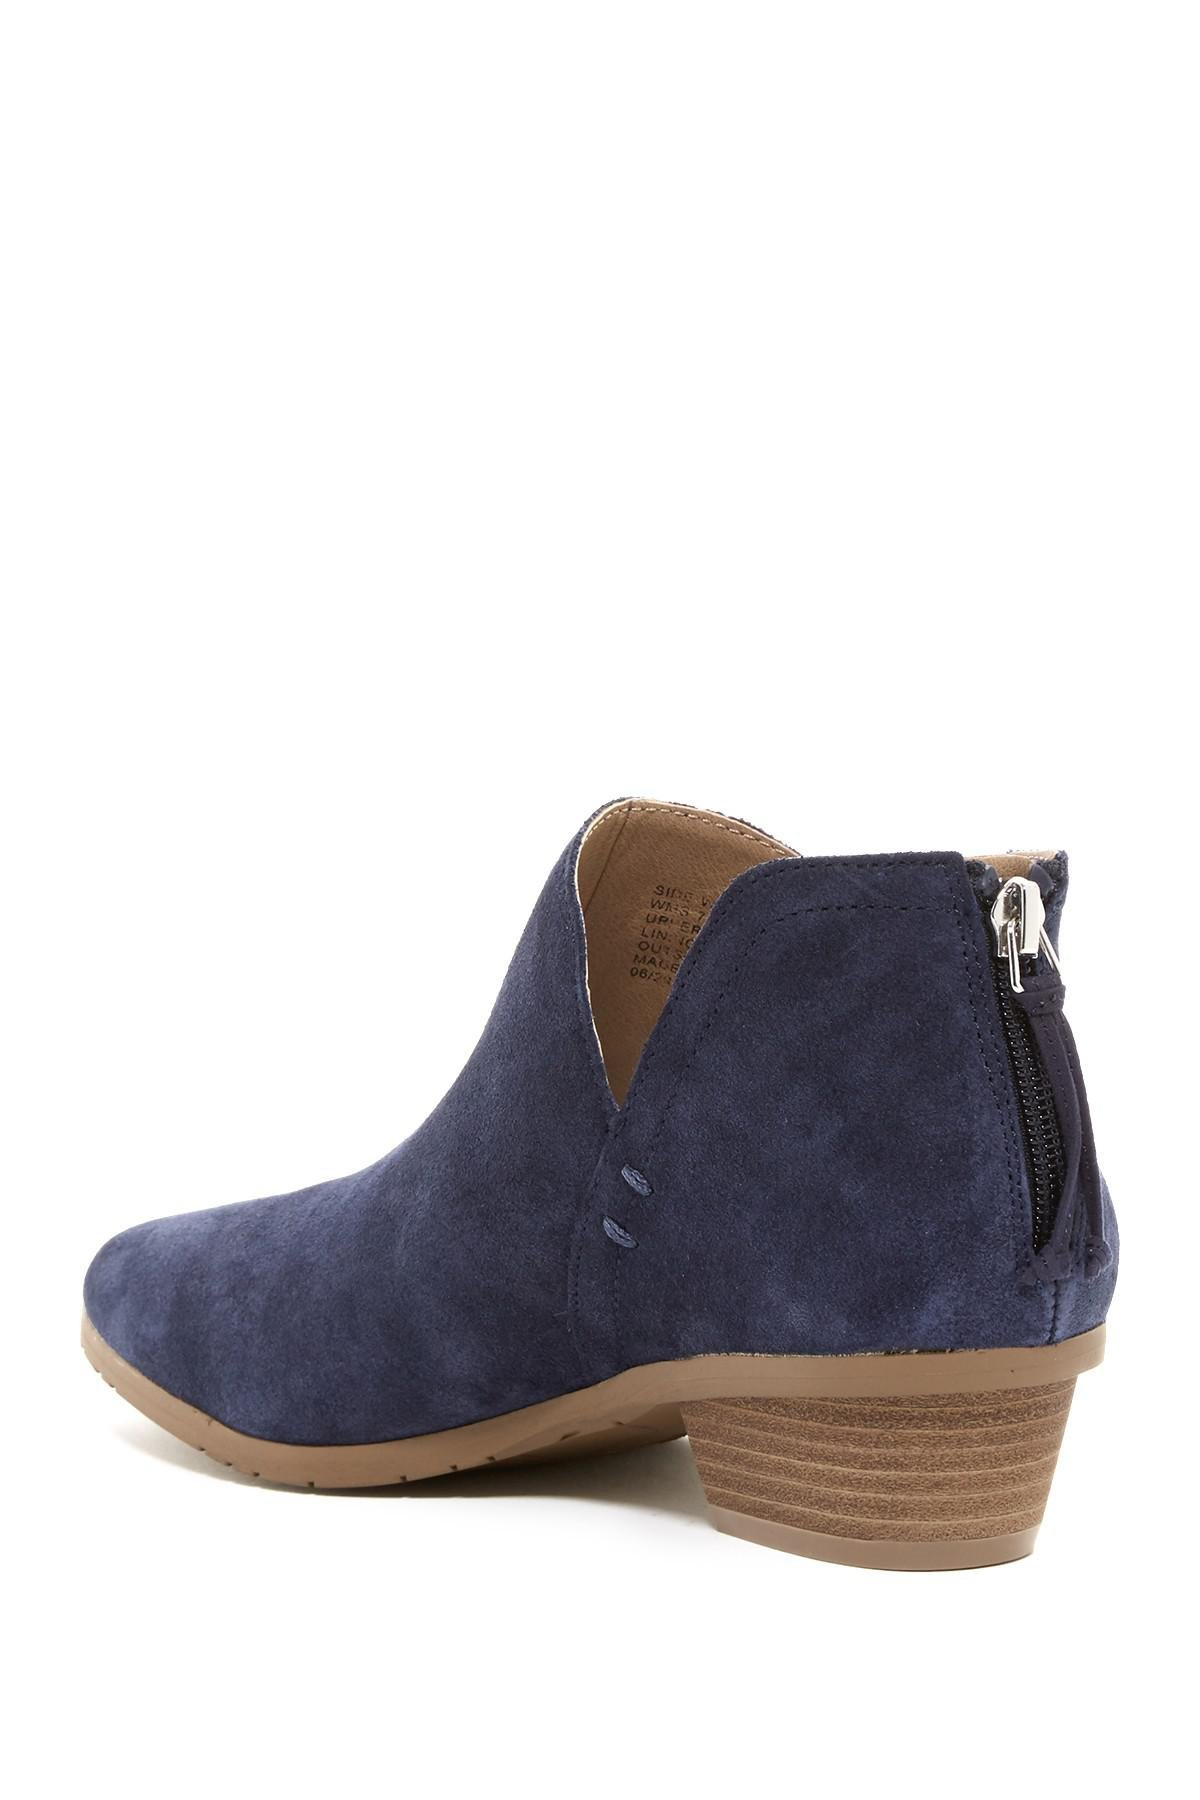 86220055486 Kenneth Cole Reaction Blue Side Way Ankle Bootie